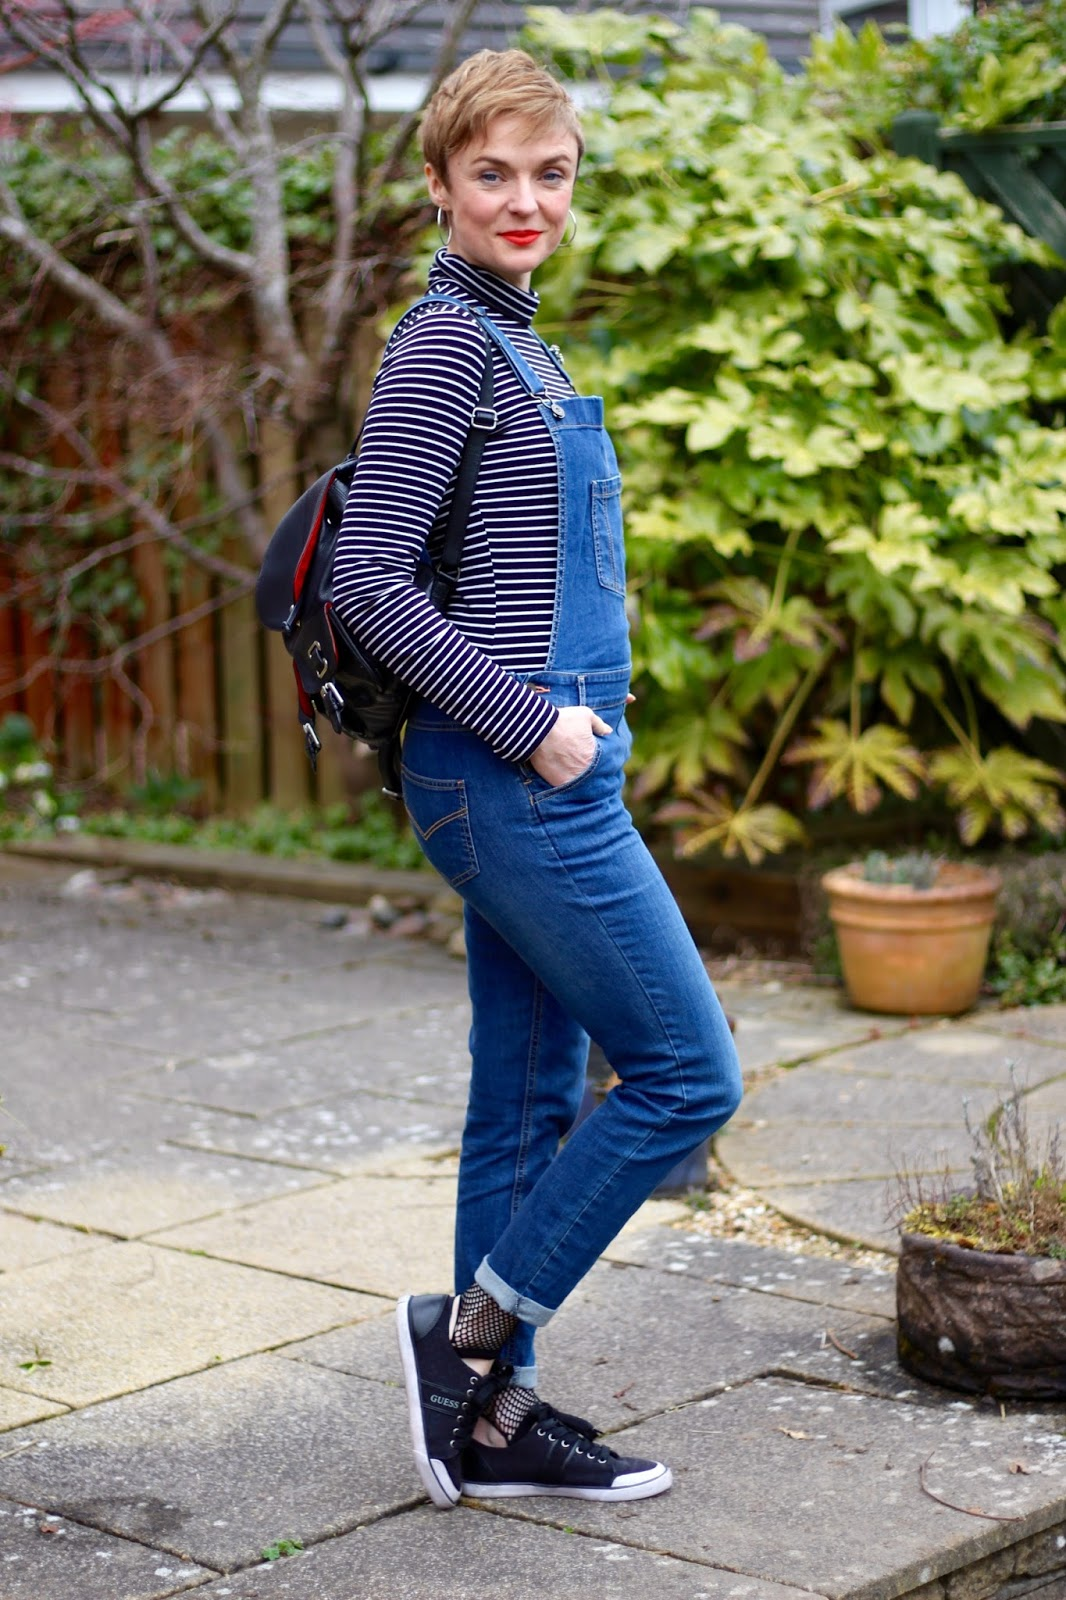 Dungarees, Stripes, Hoops, Fishnet and Short Hair, over 40 | Fake Fabulous